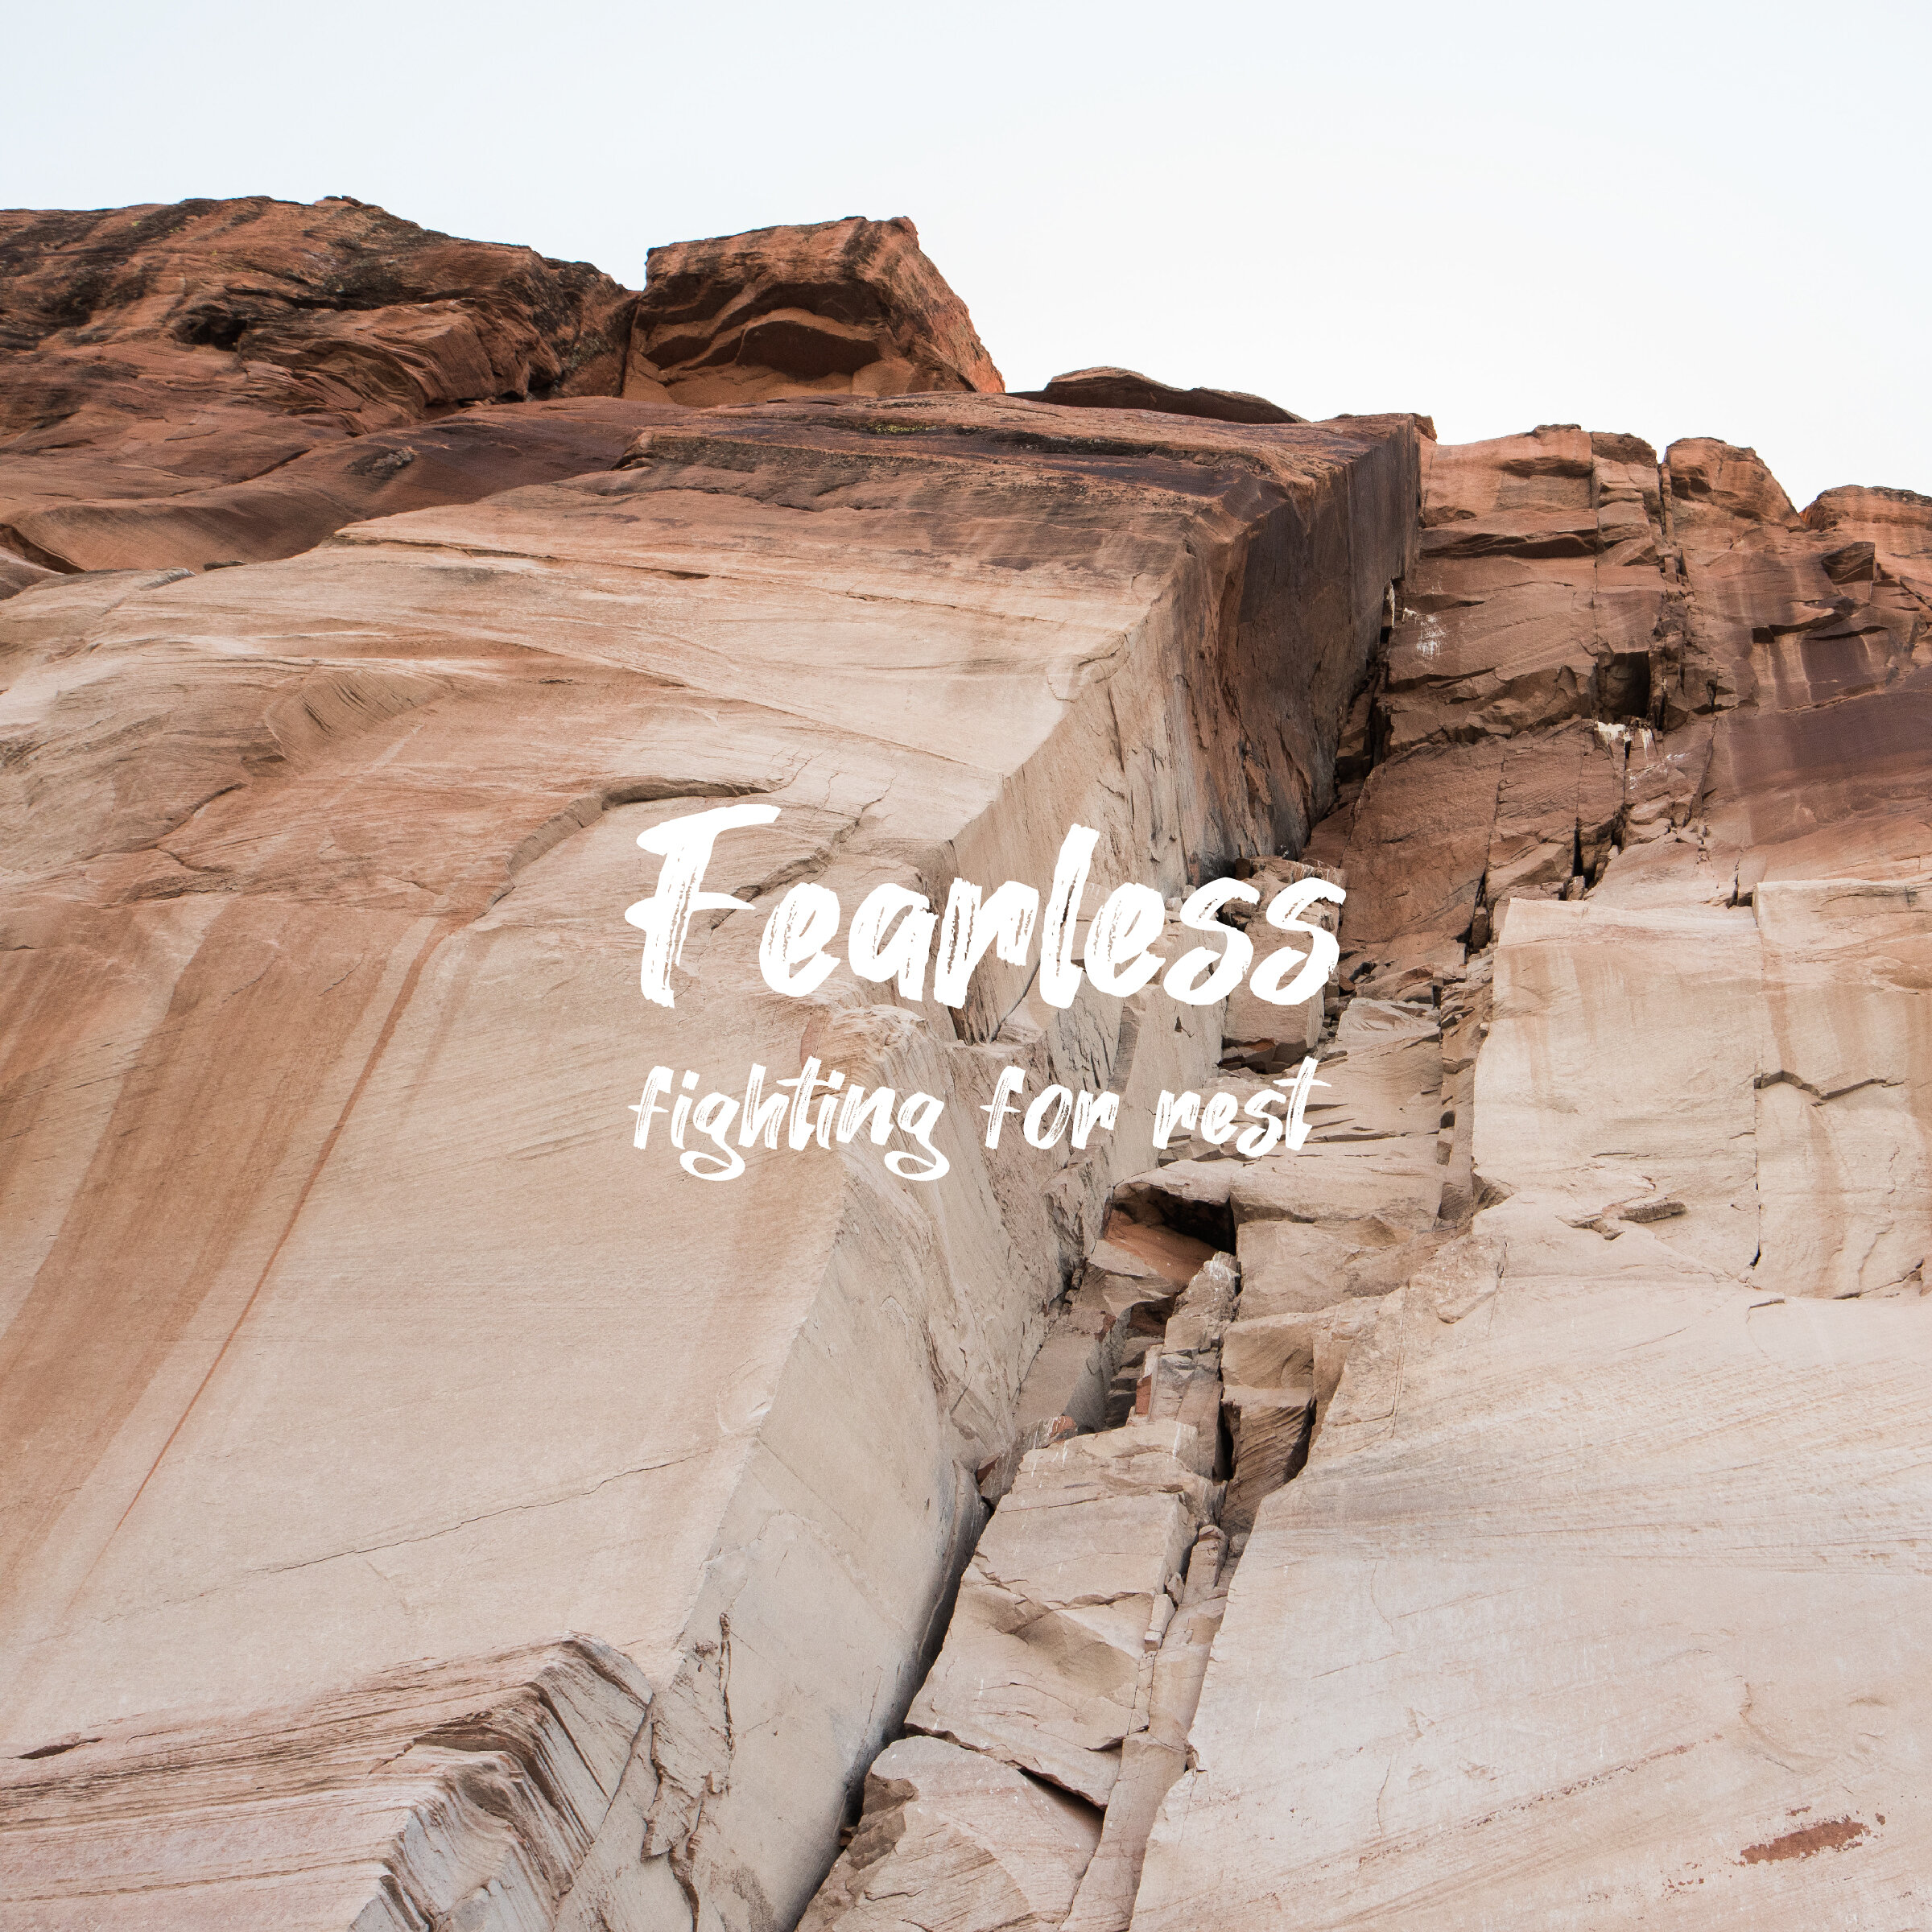 Fearless: Fighting for Rest